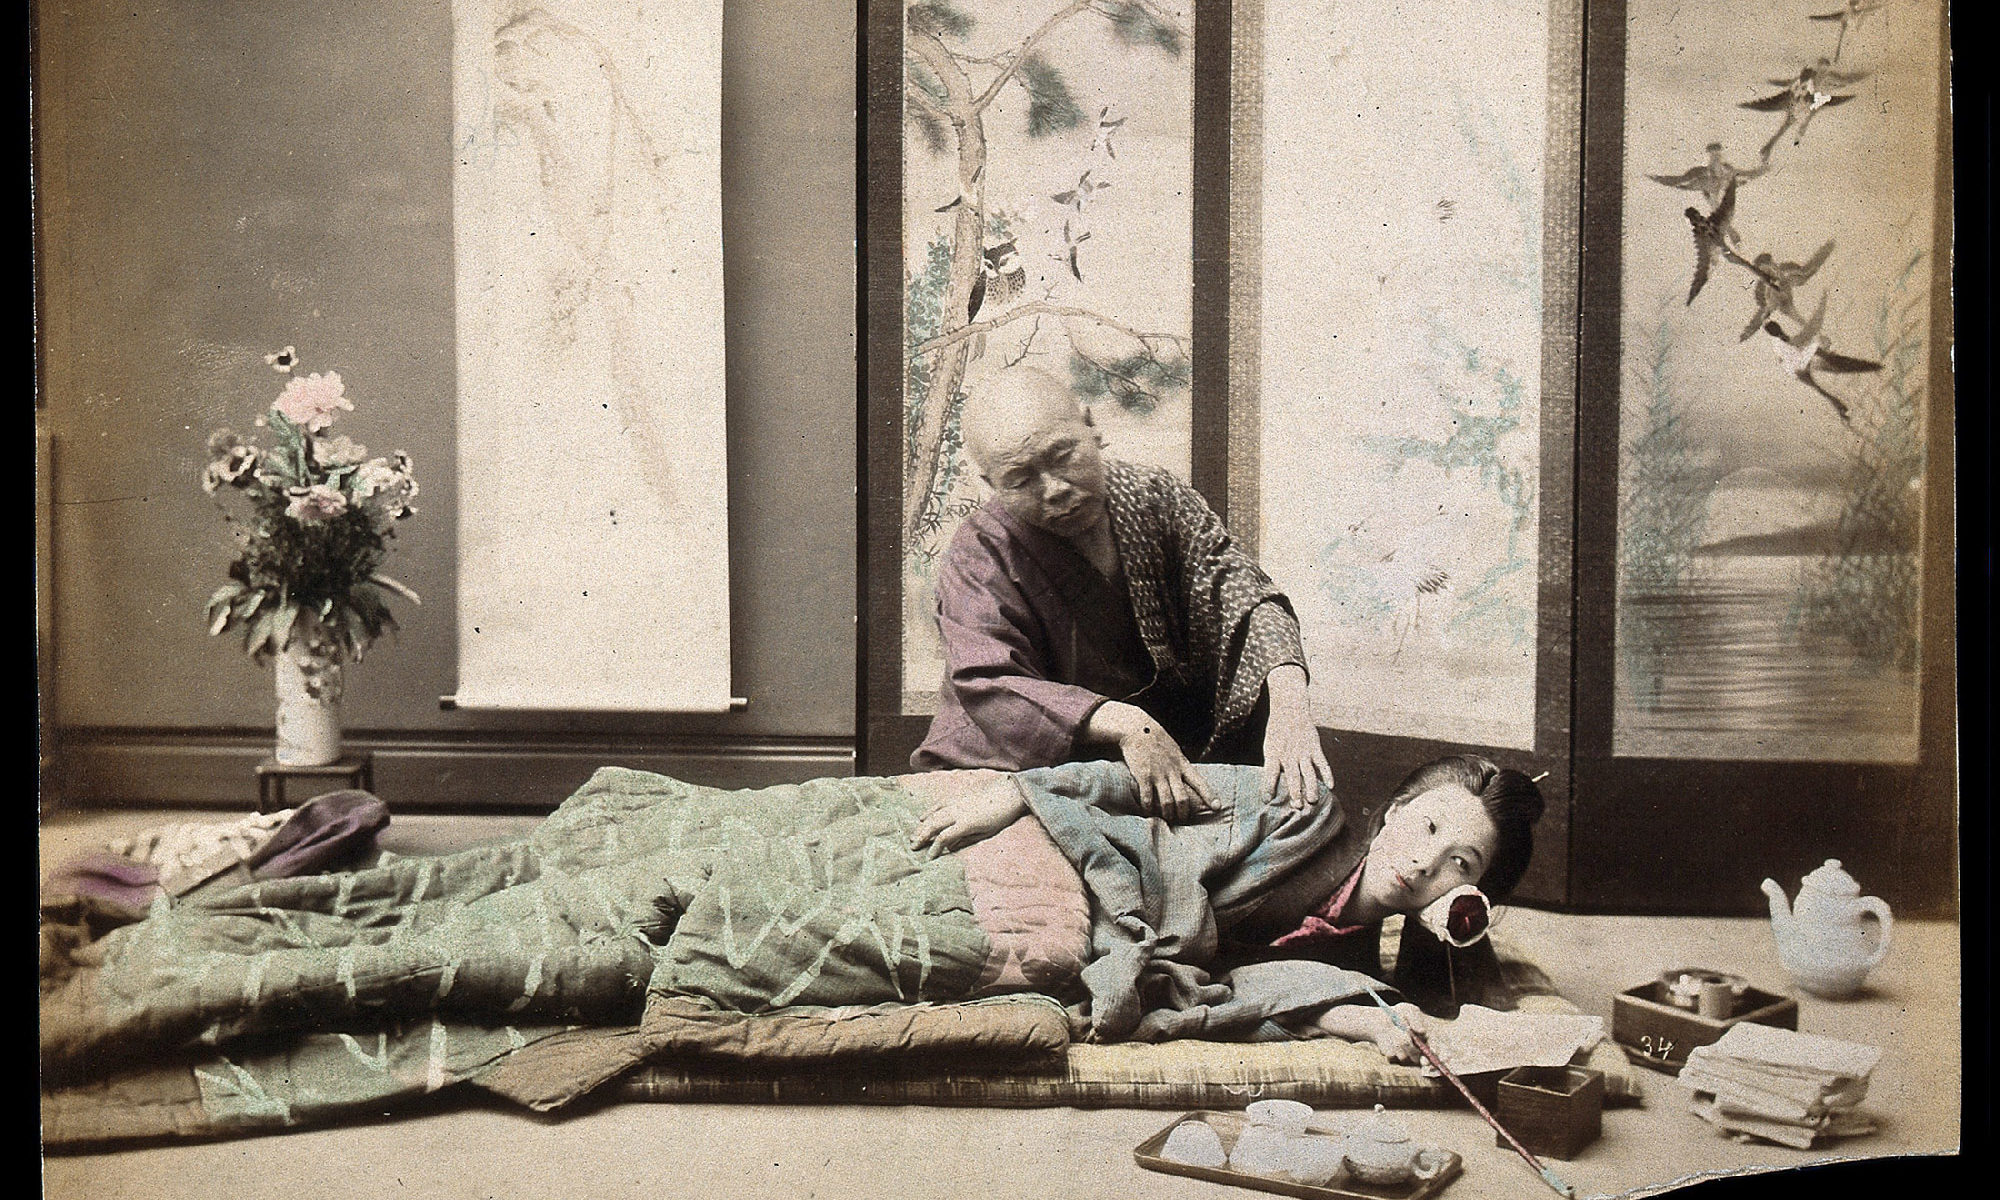 A Japanese woman being massaged by a blind Japanese